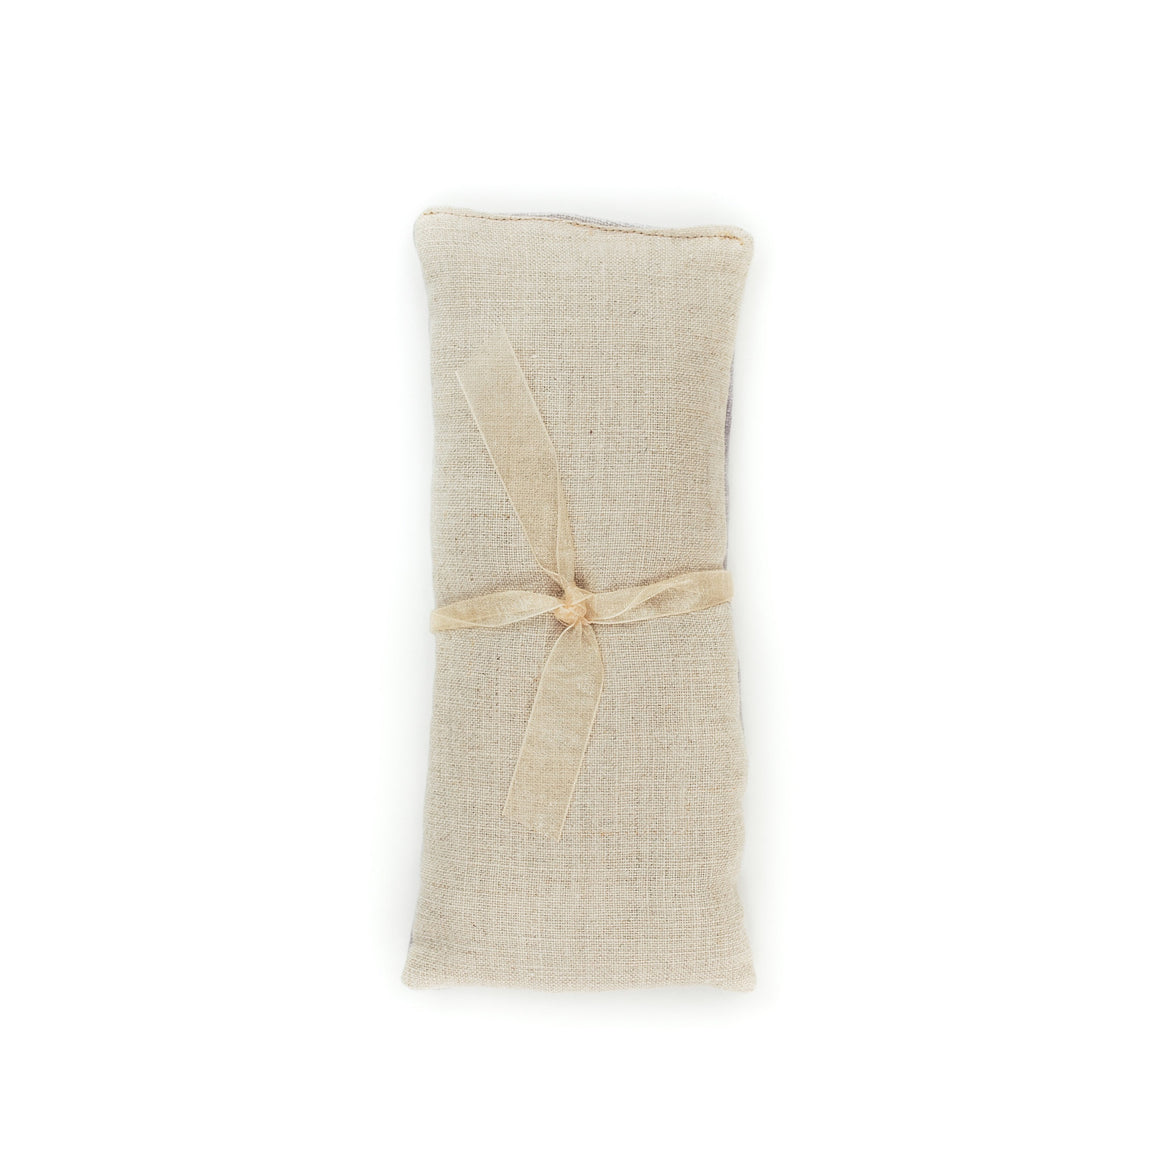 Lavender + Flax Eye Pillow